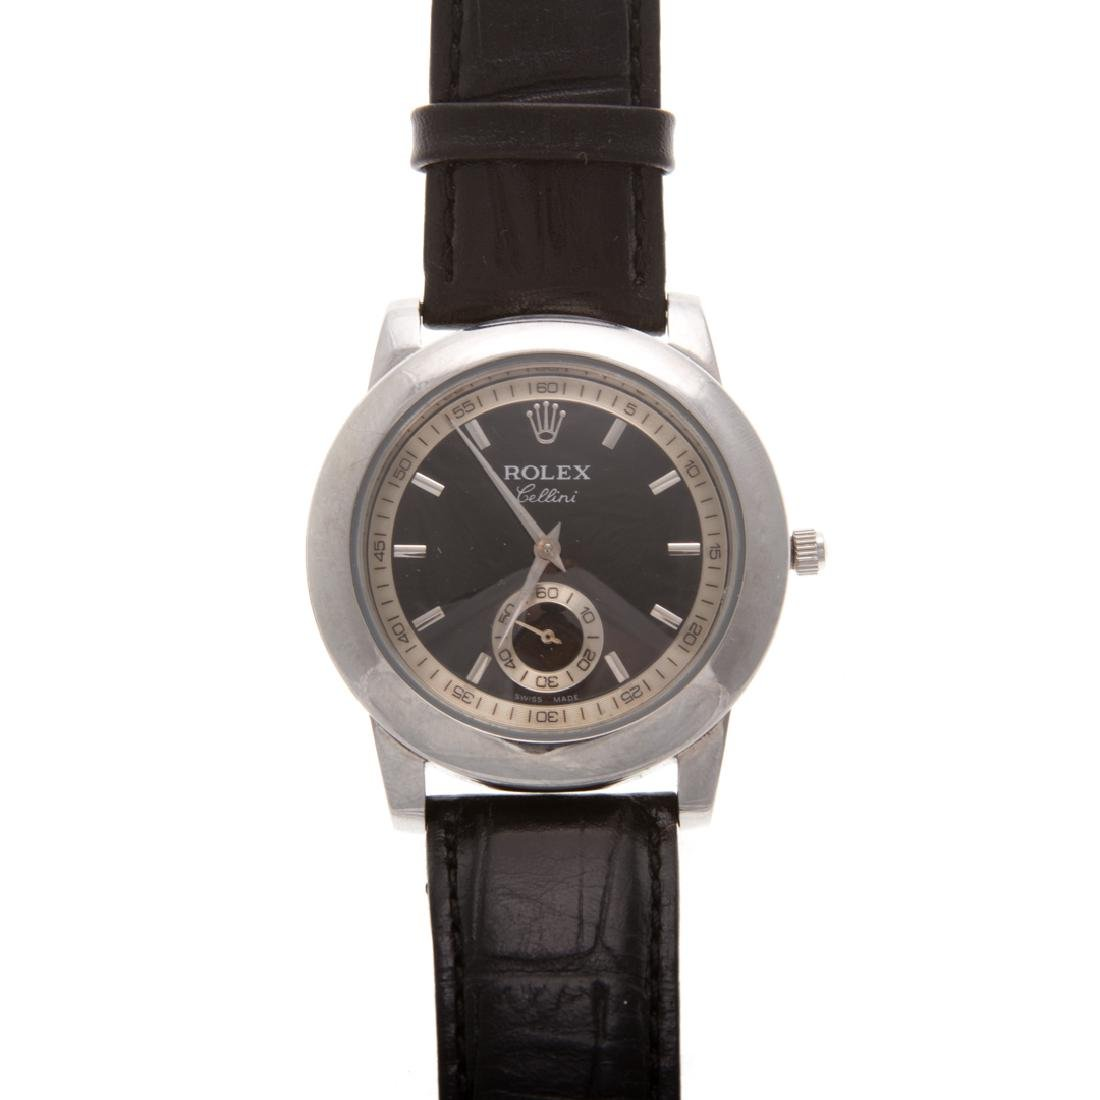 A Rolex Inspired Cellini with Black Strap